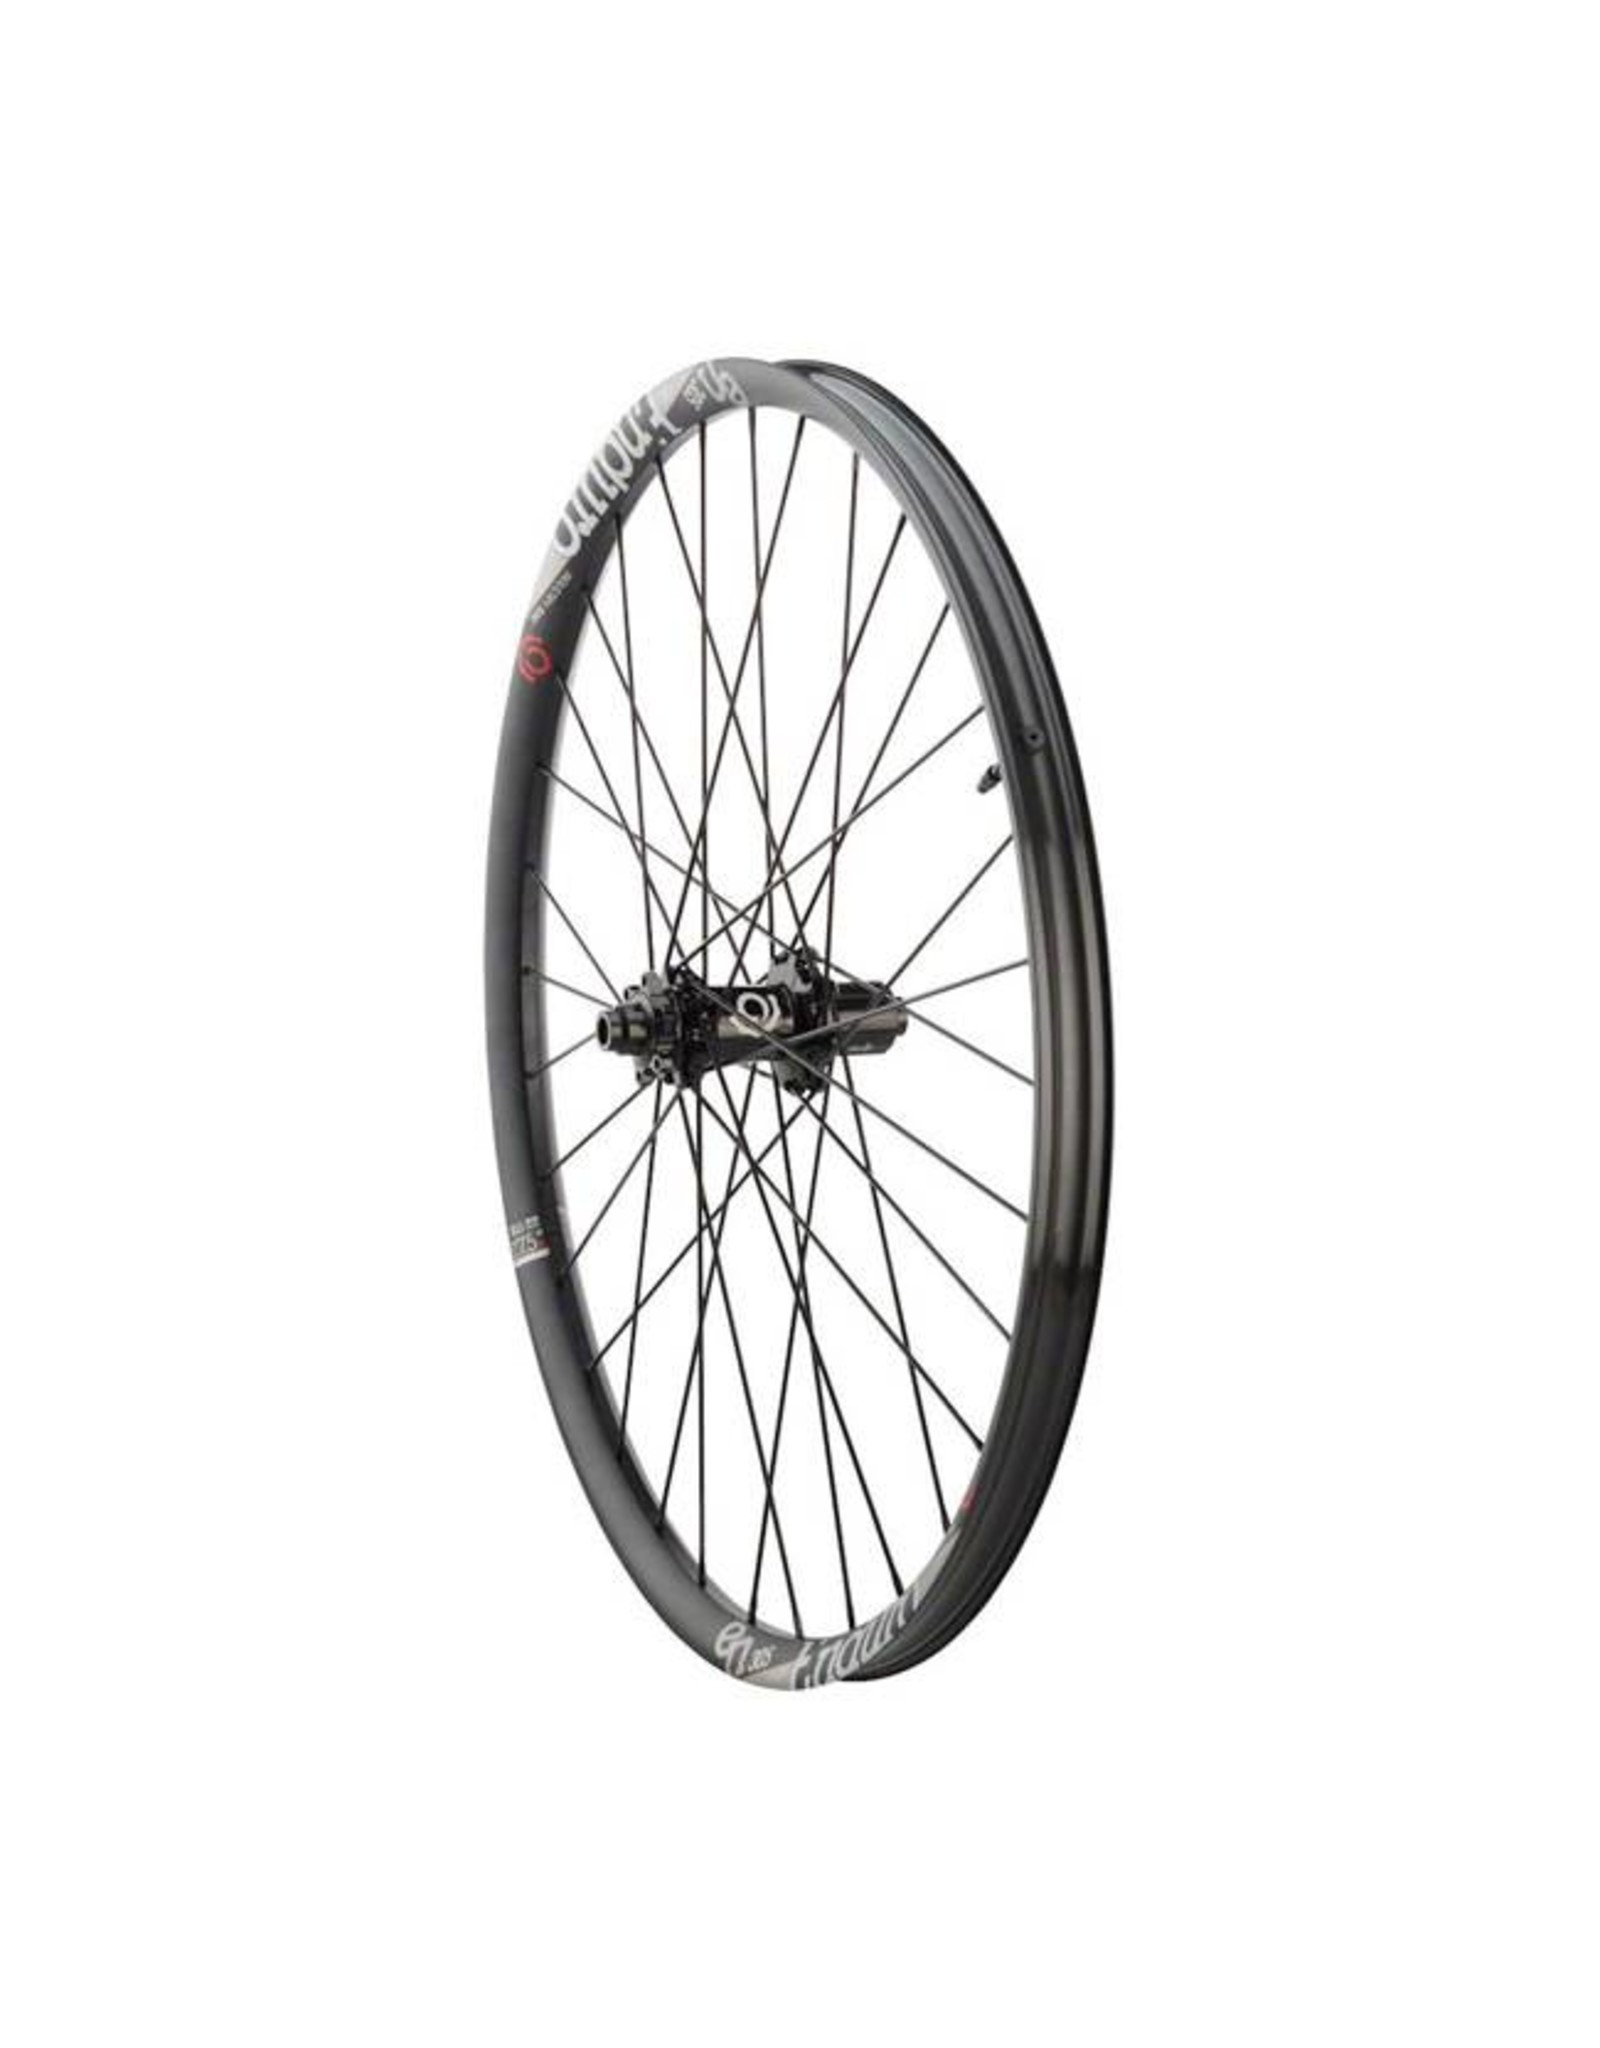 "Industry Nine Industry Nine  Enduro 305  Wheelset: 27.5"" 15 x 110mm Thru Axle Front, 12 x 148mm Thru Axle Rear, Shimano HG Freehub, Black"